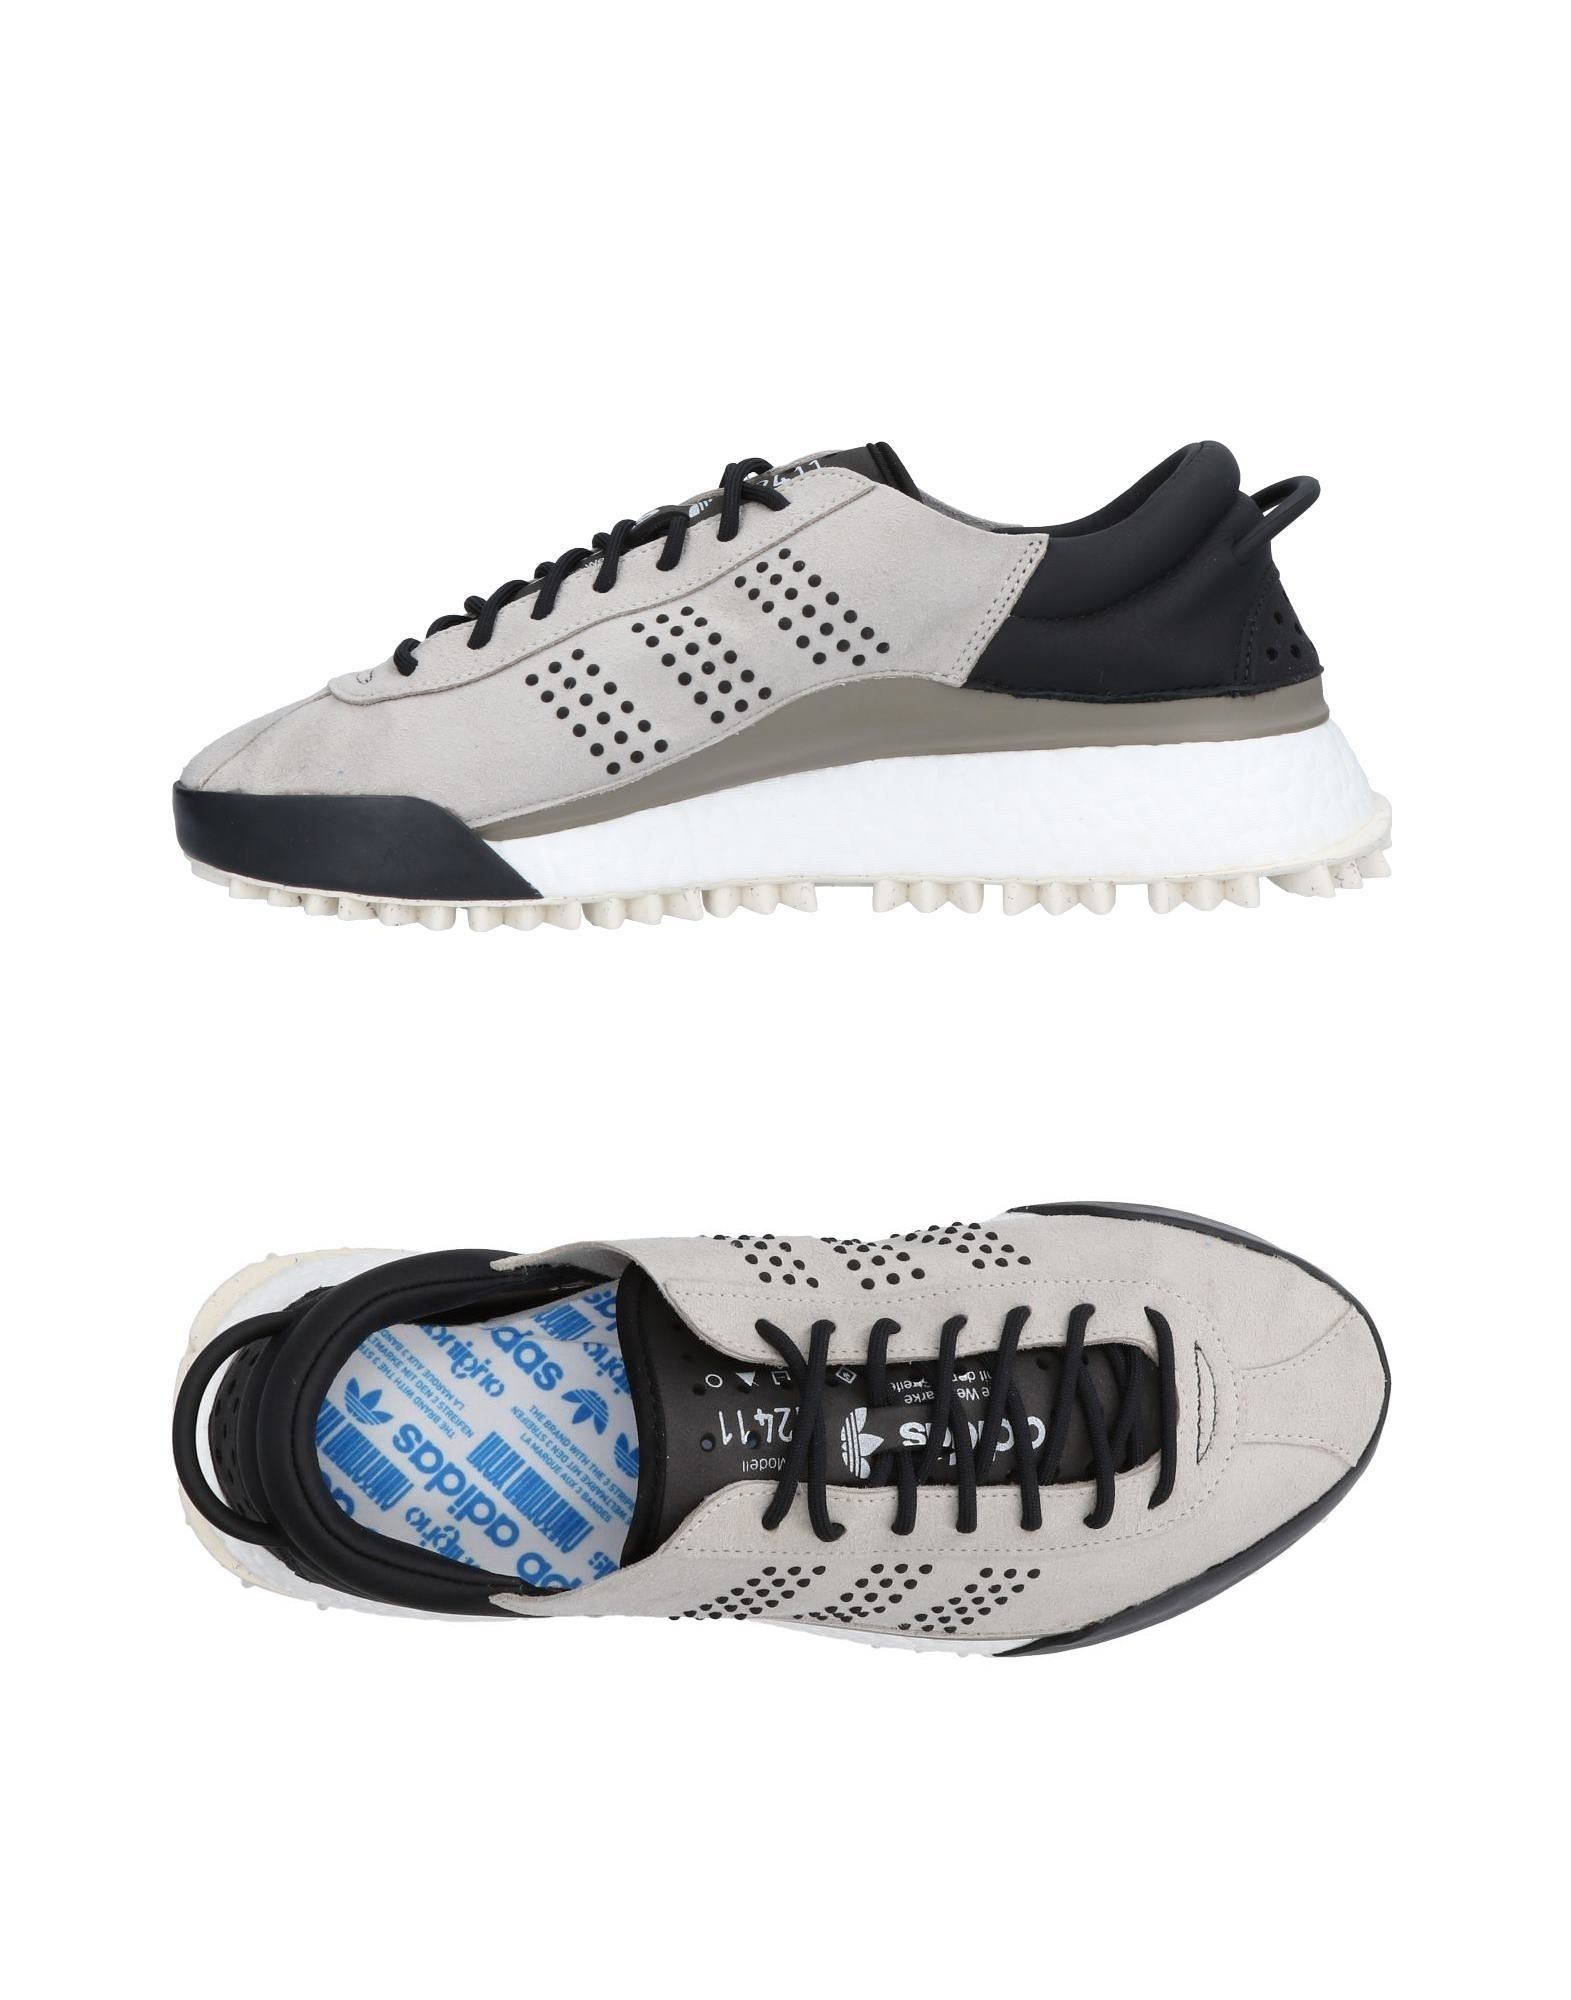 Turnschuhe Adidas Originals By Alexander Wang herren - 11495373CX